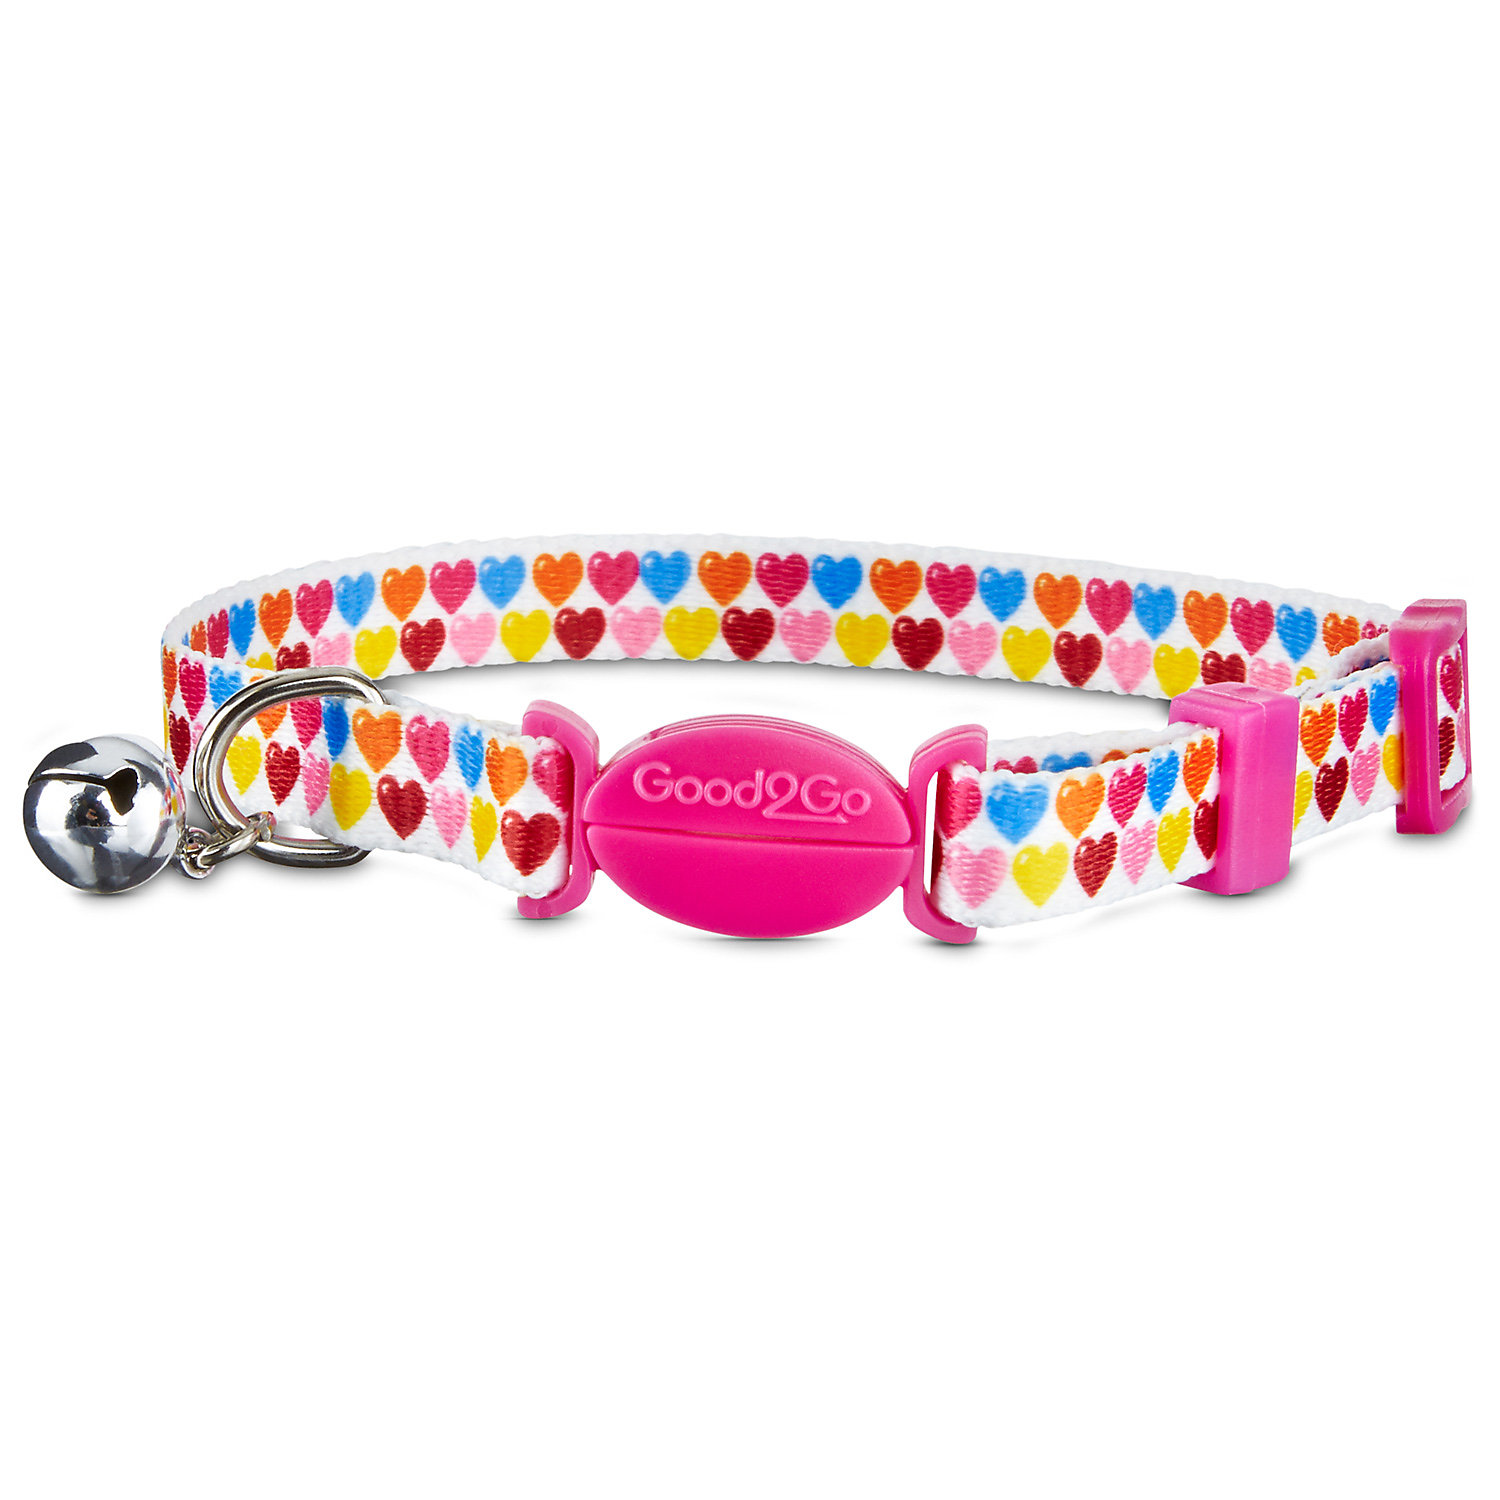 Good2go Multicolor Heart Breakaway Cat Collar For Necks 8 12 One Size Fits All Multi Color